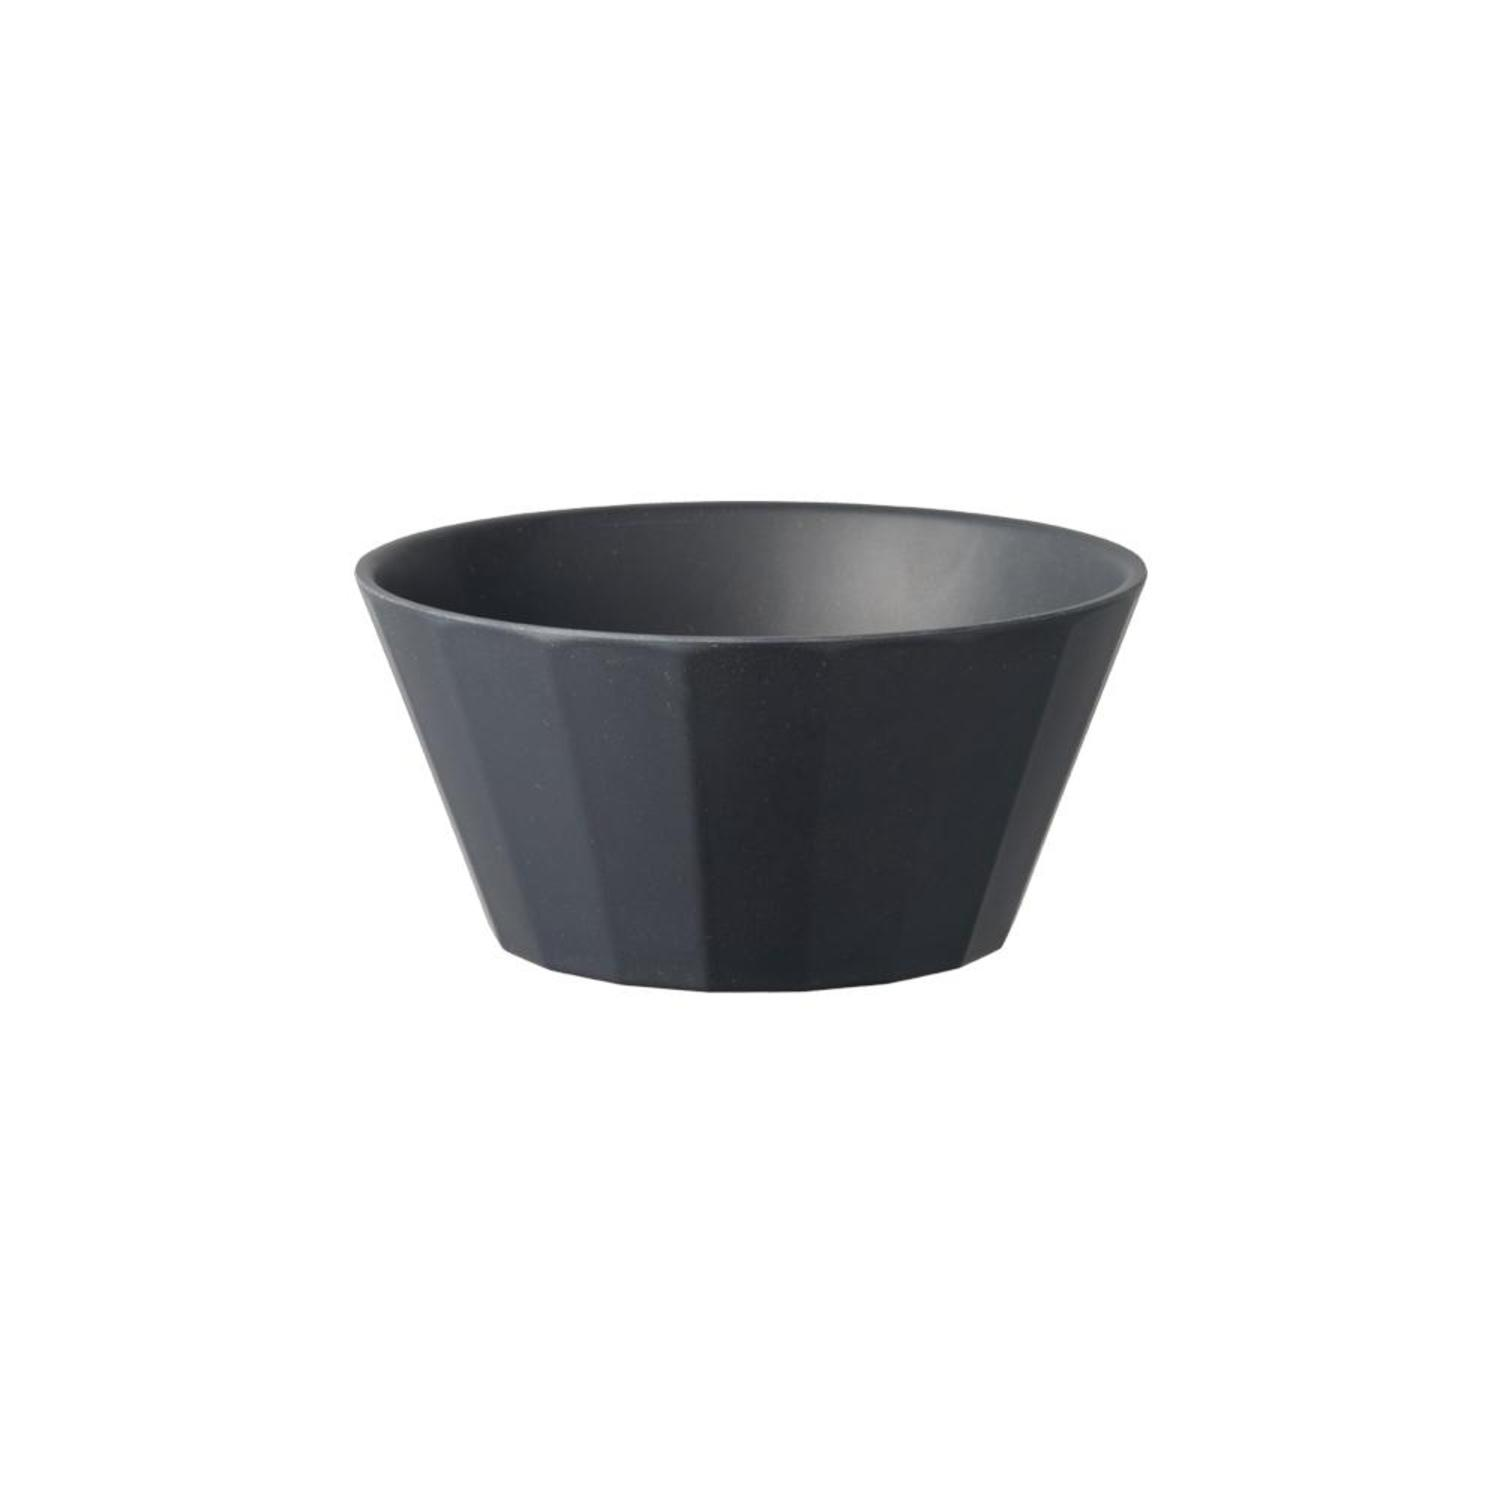 [KINTO] ALFRESCO Bowl 160mm - Black